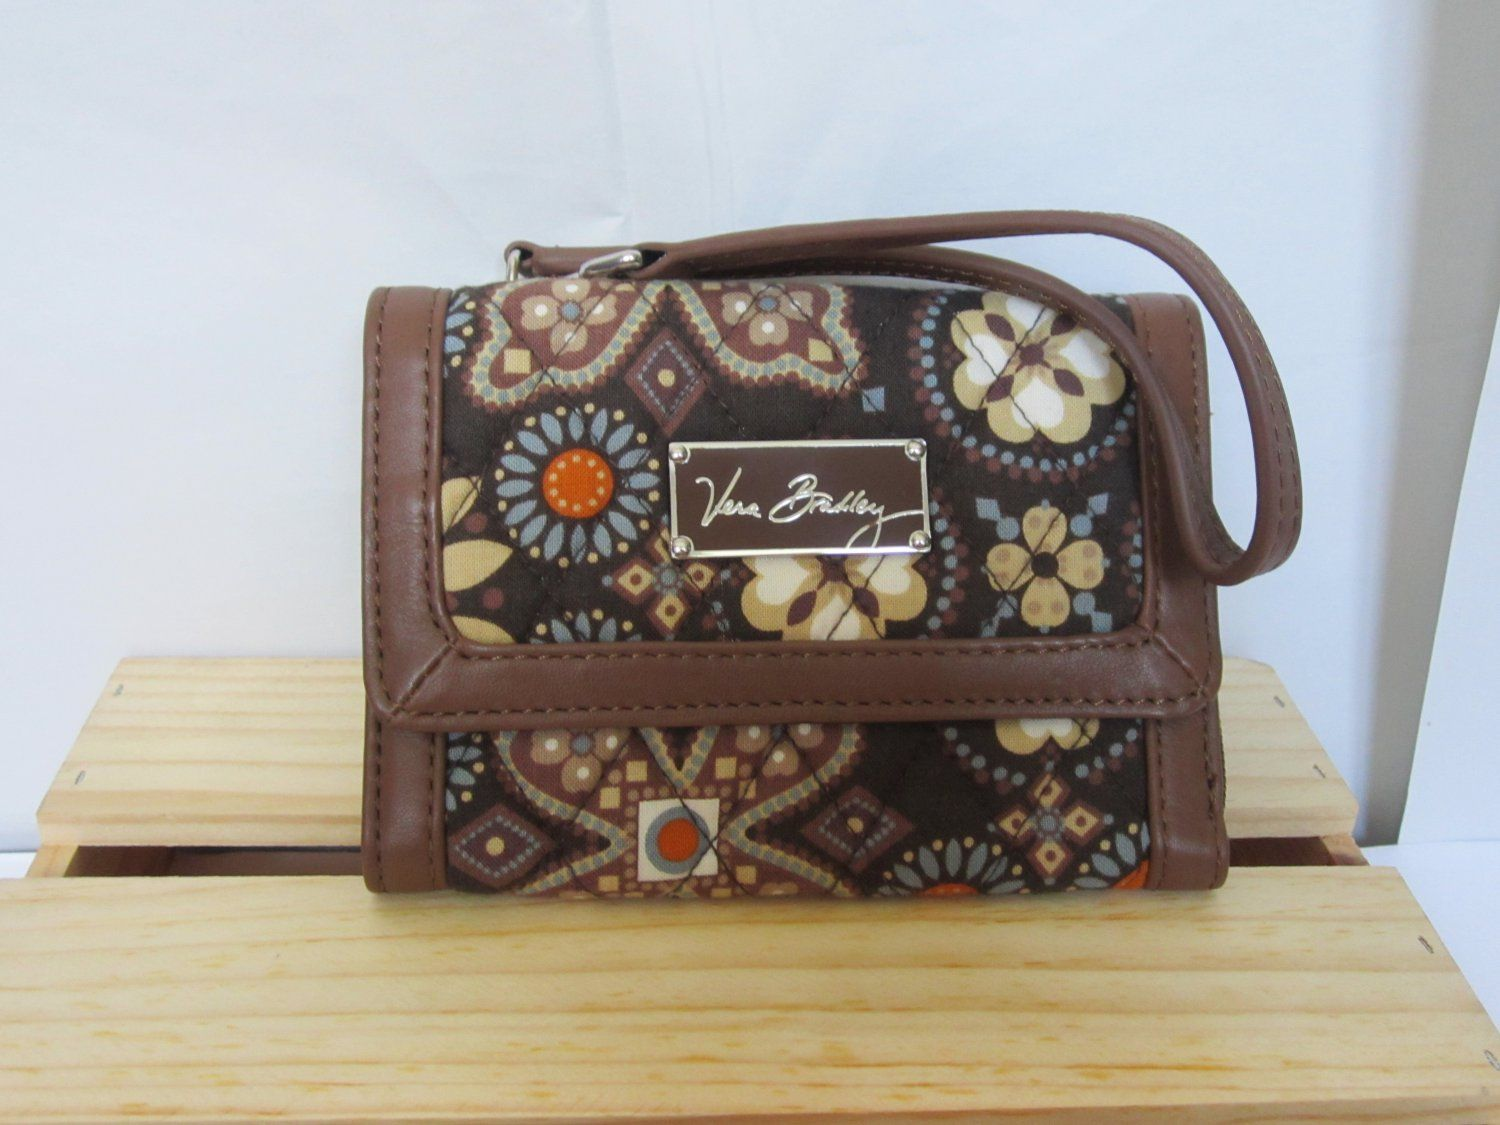 7a20853cbd86 Vera Bradley Anniversary Wristlet in Canyon brown pattern. ID coin zip-around  wallet iPhone tech case. Click visit site to see inside pics. nice design.